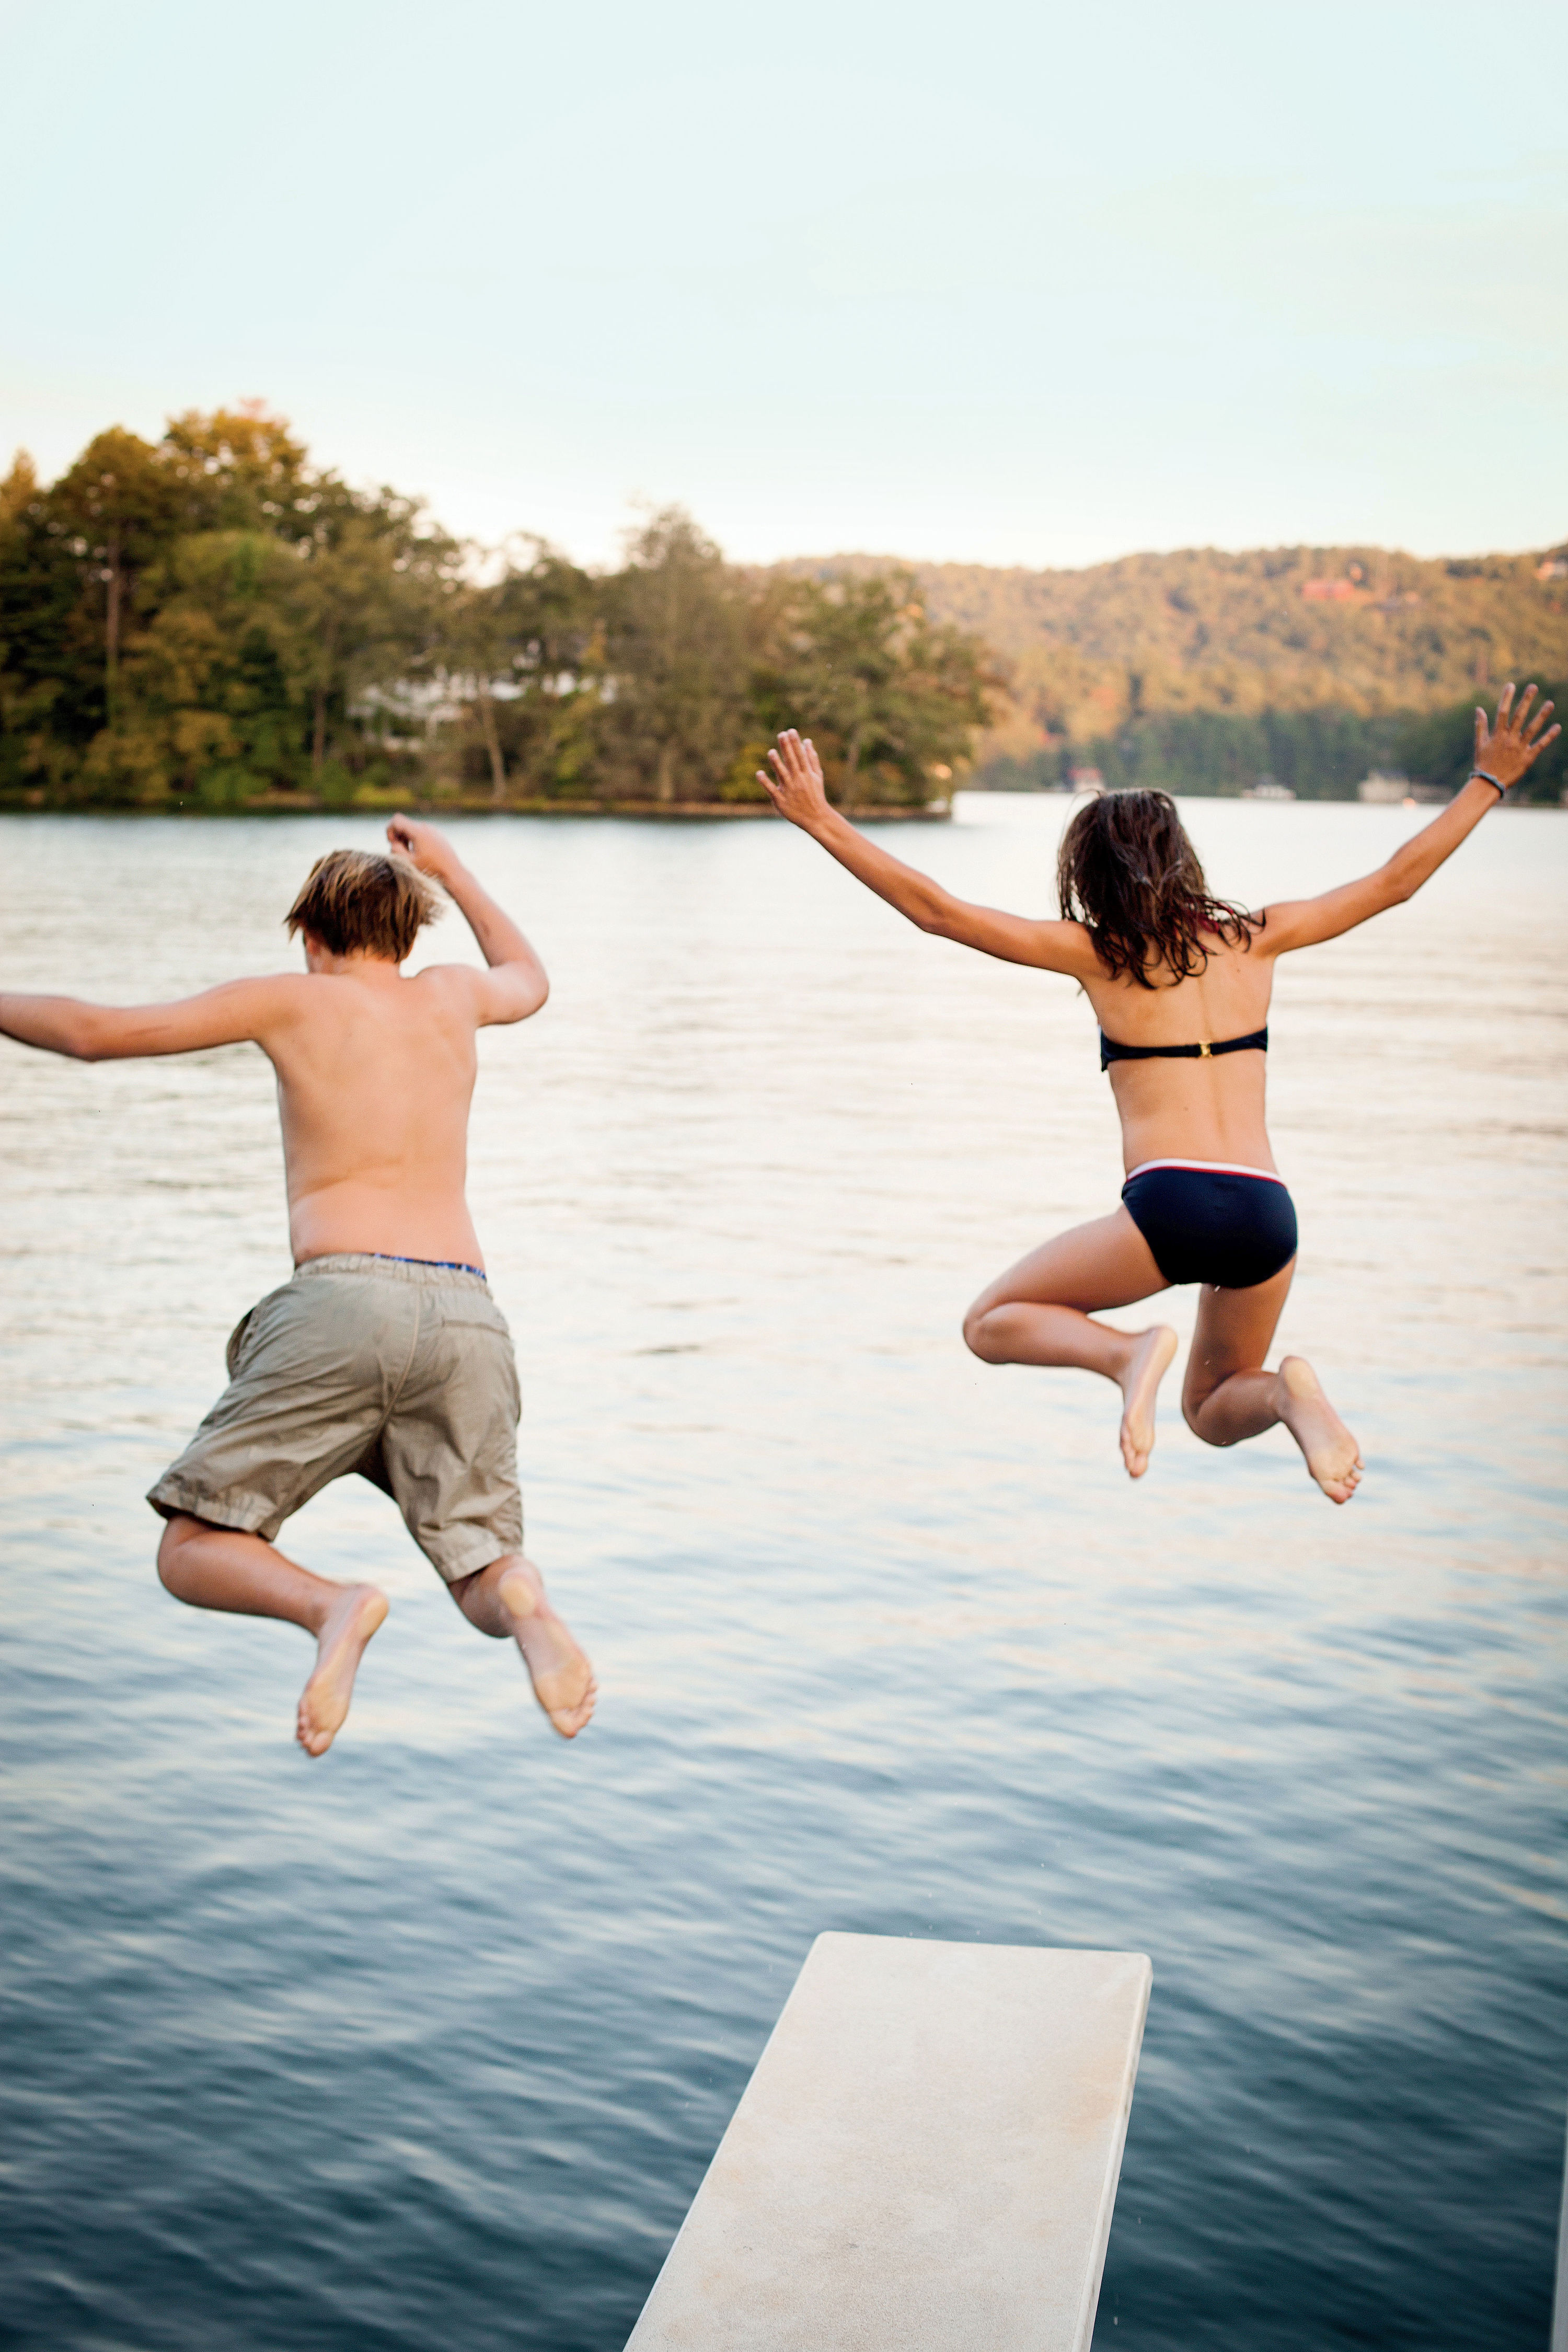 10 Reasons Southerners Go to the Lake